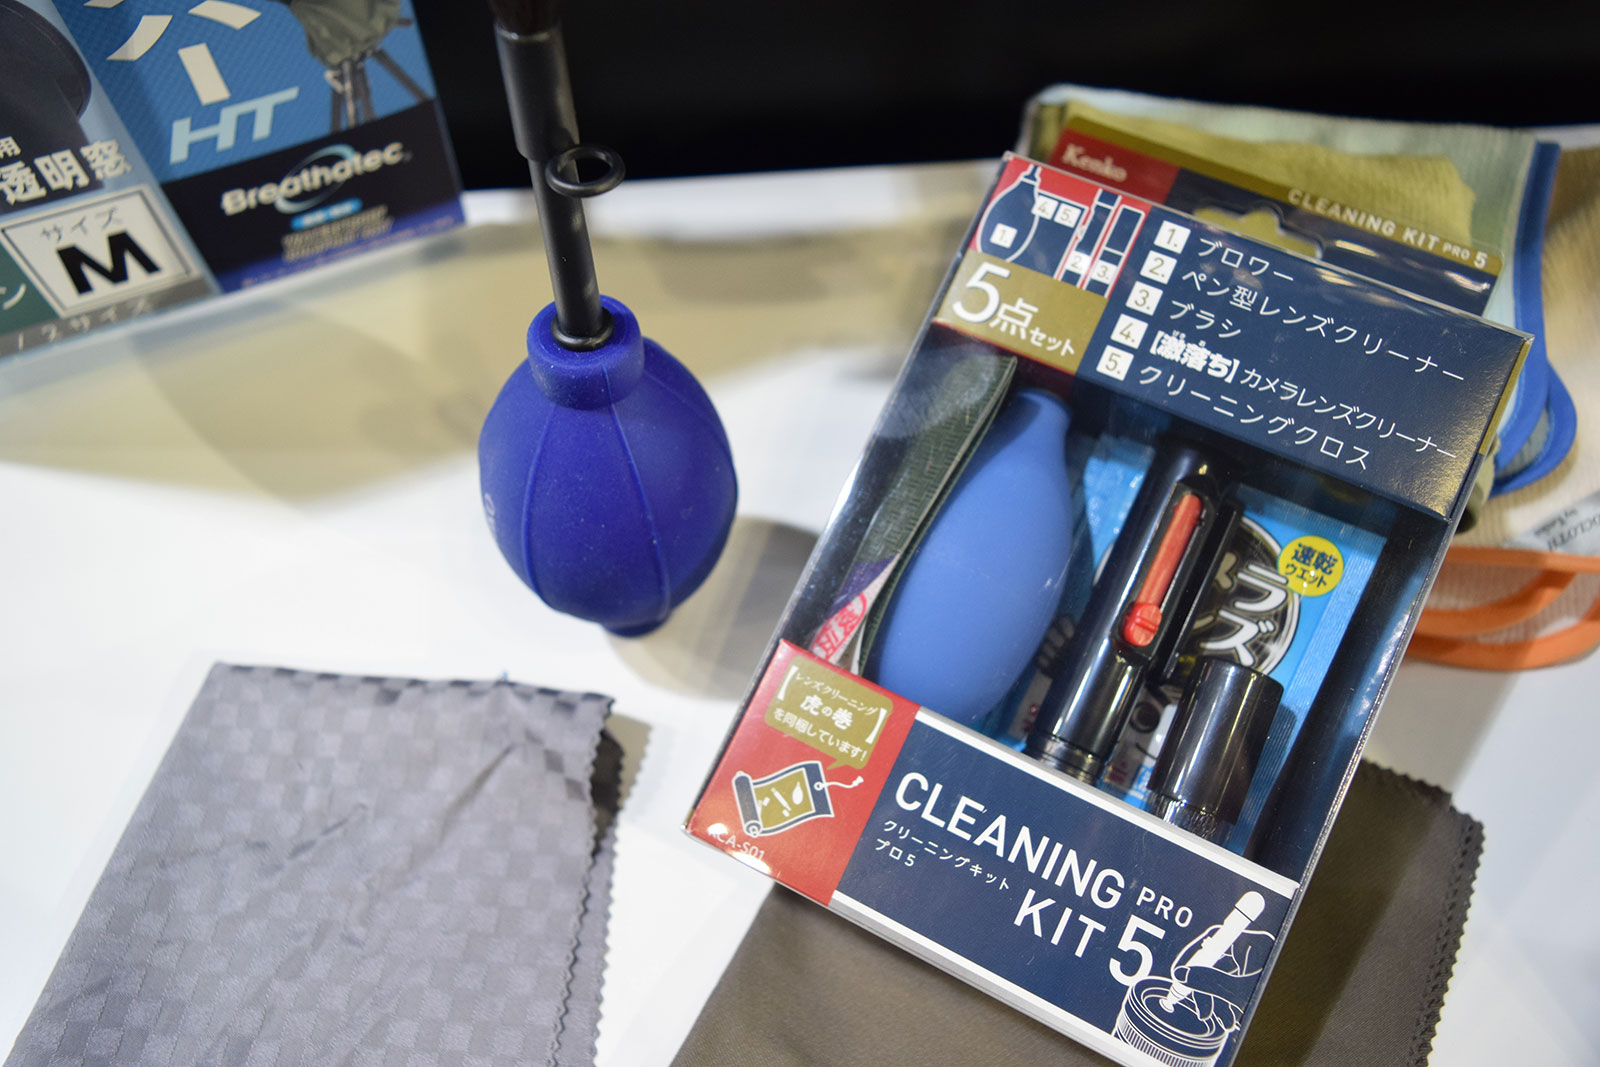 Kenko Cleaning Kit PRO 5